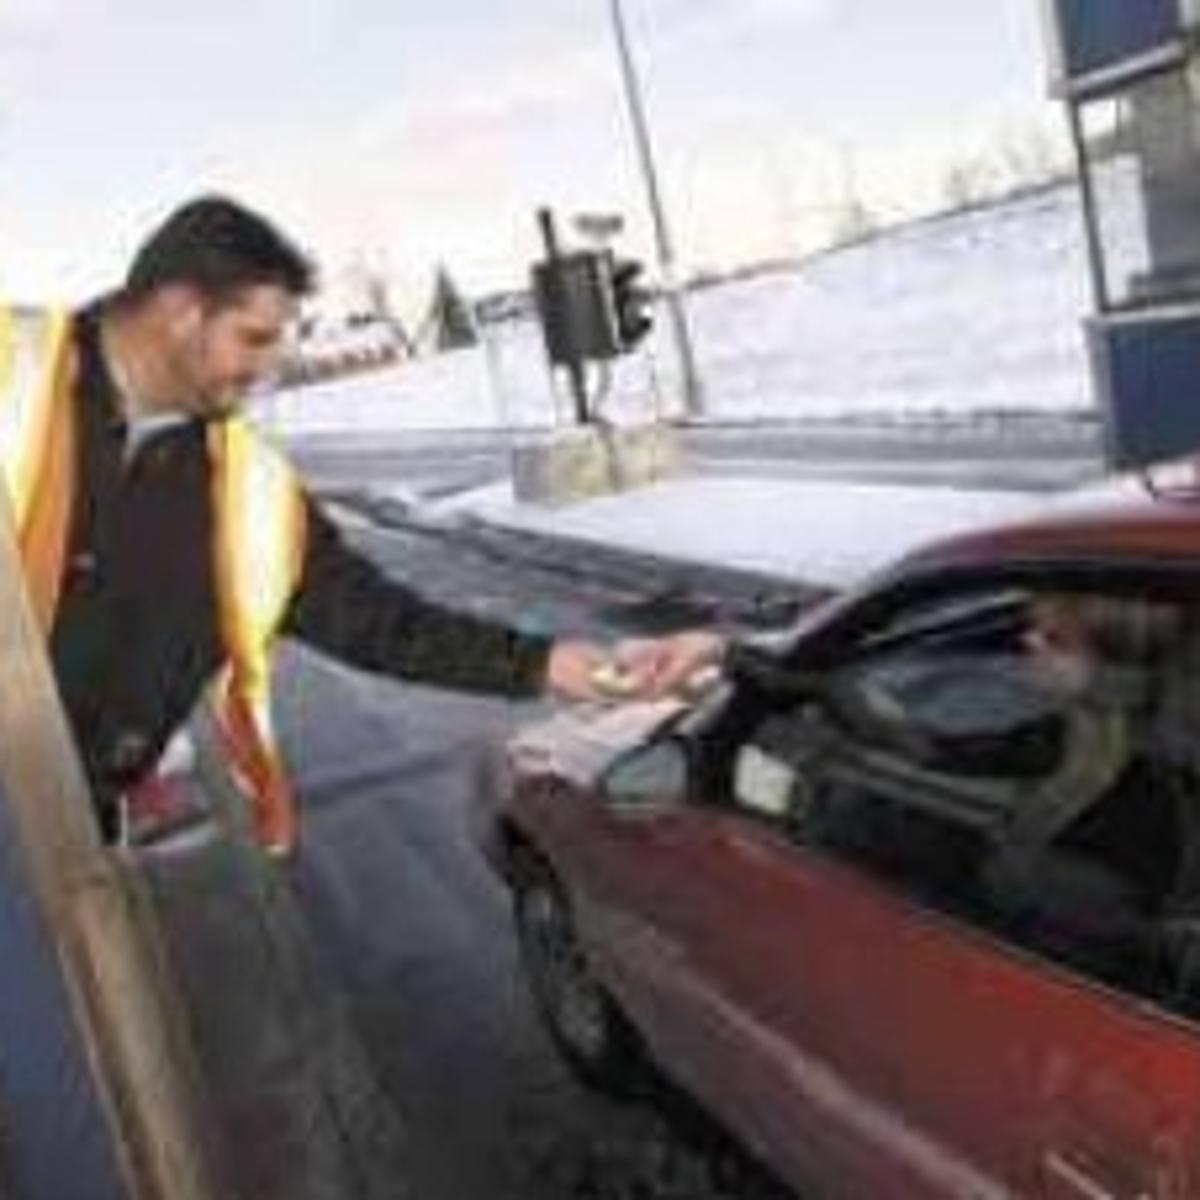 LIFE OF A TOLL COLLECTOR Coins … complaints | Auburnpub com